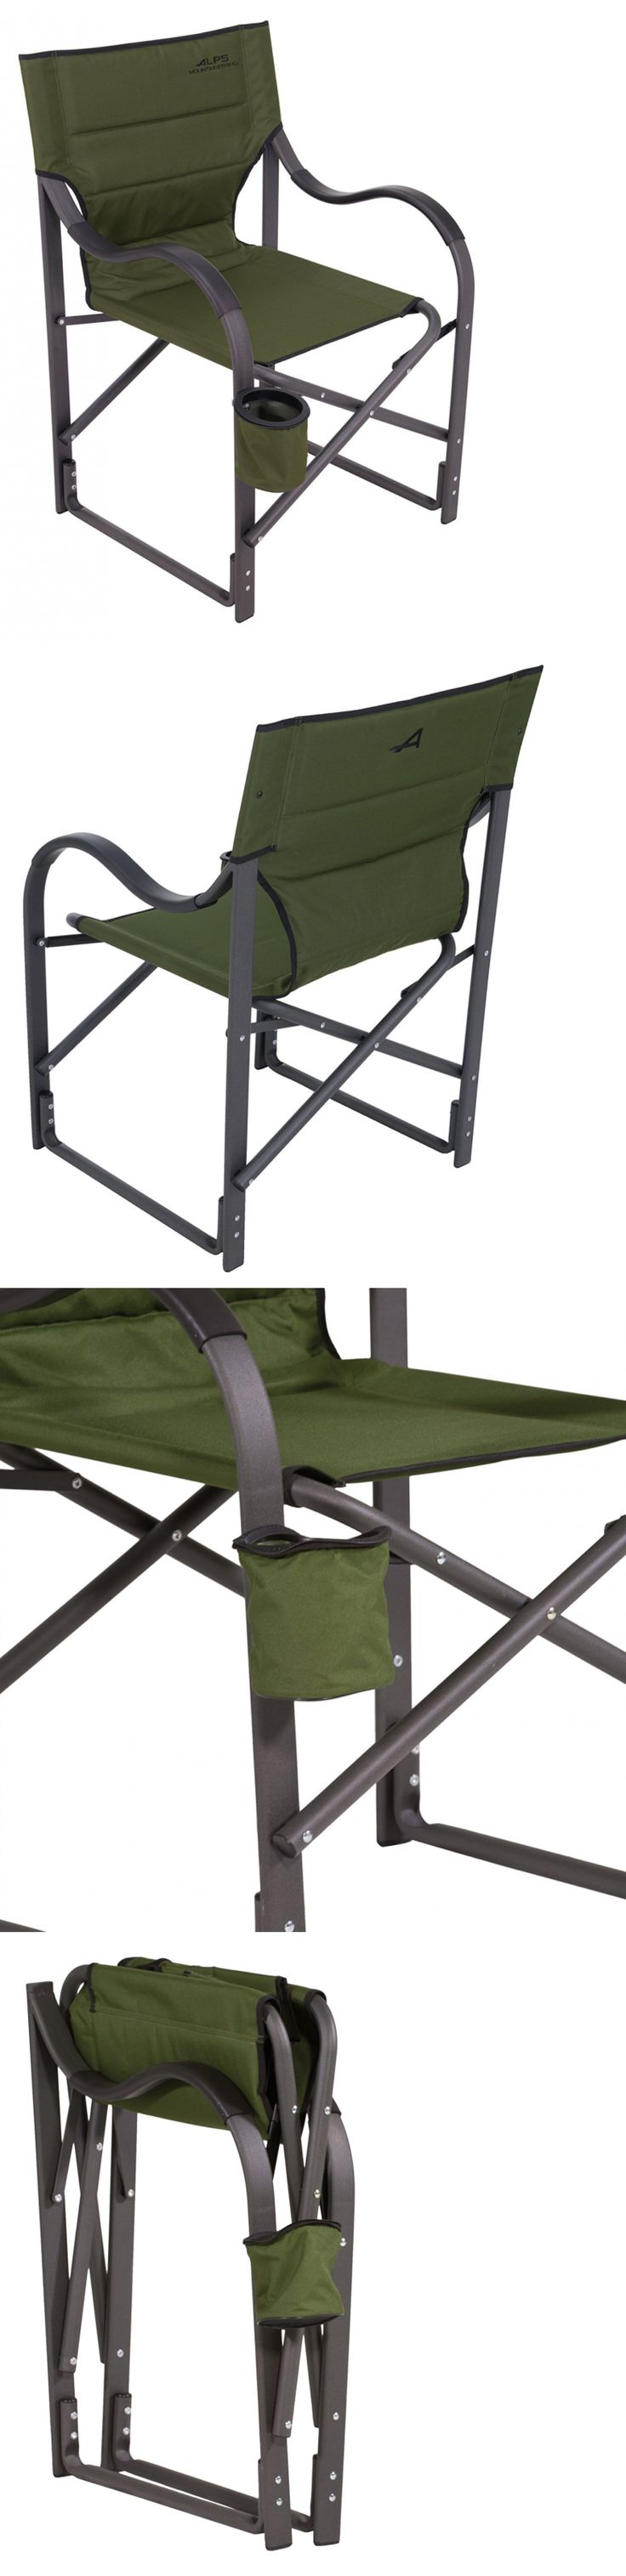 Camping Furniture 16038: Folding Camp Chair Outdoor Seat Heavy Duty Camping Gear Beach Hiking Lounge Tent -> BUY IT NOW ONLY: $78.57 on eBay!